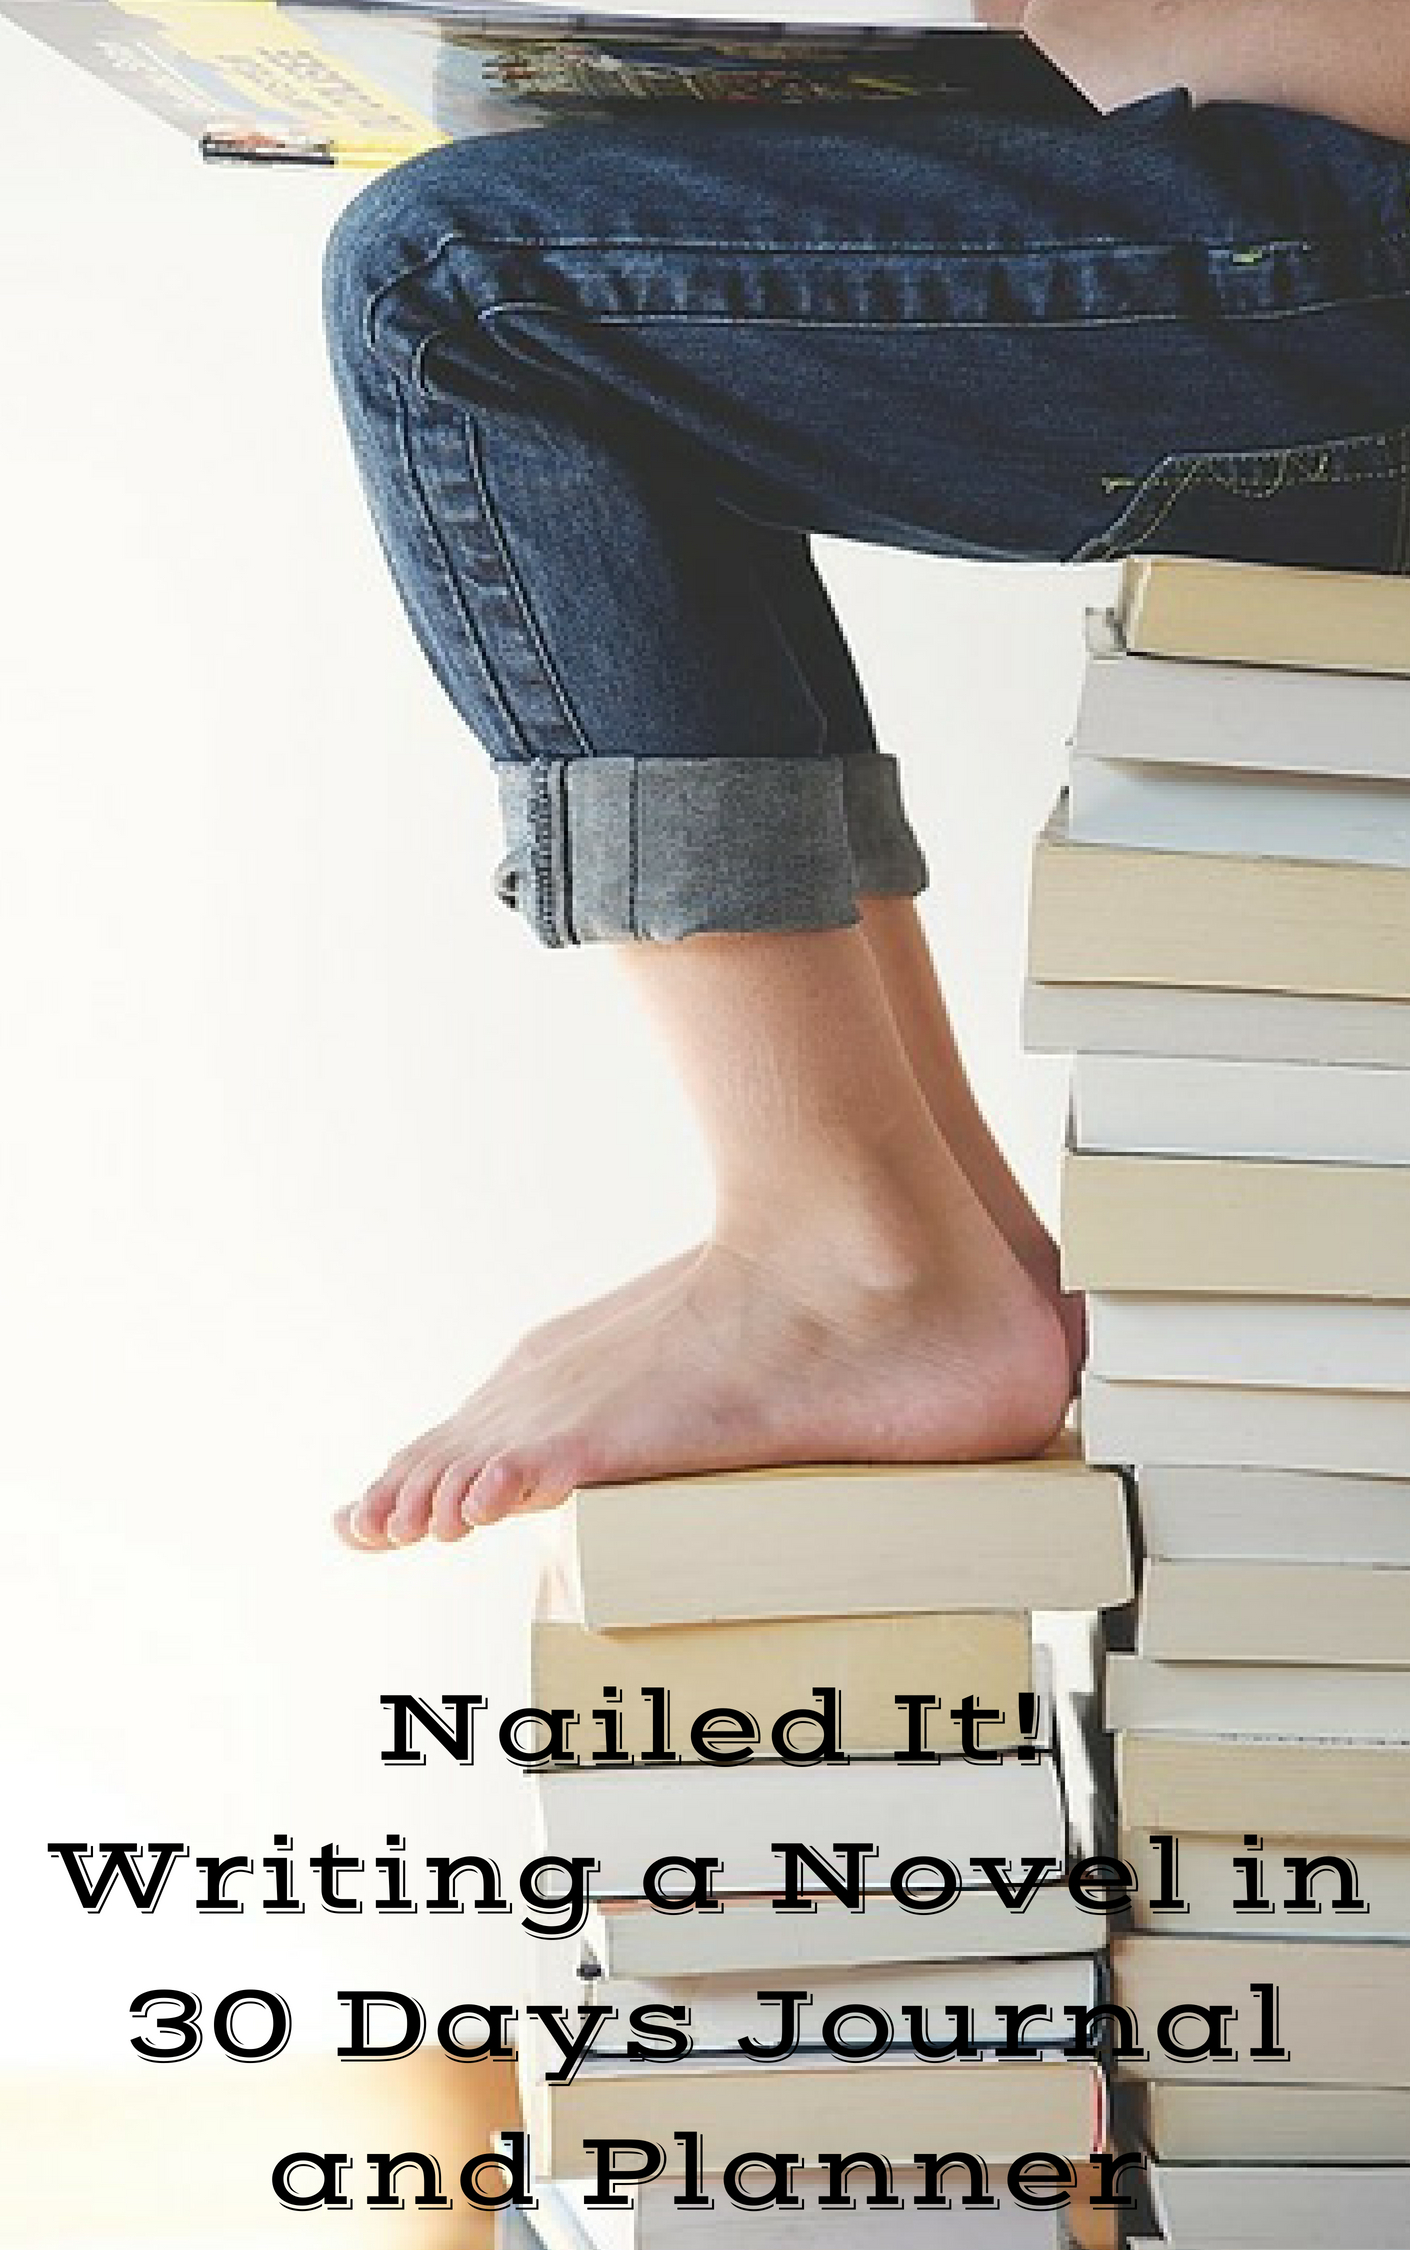 Nailed It!Writing a Novel in 30 Days Jornal and Planner